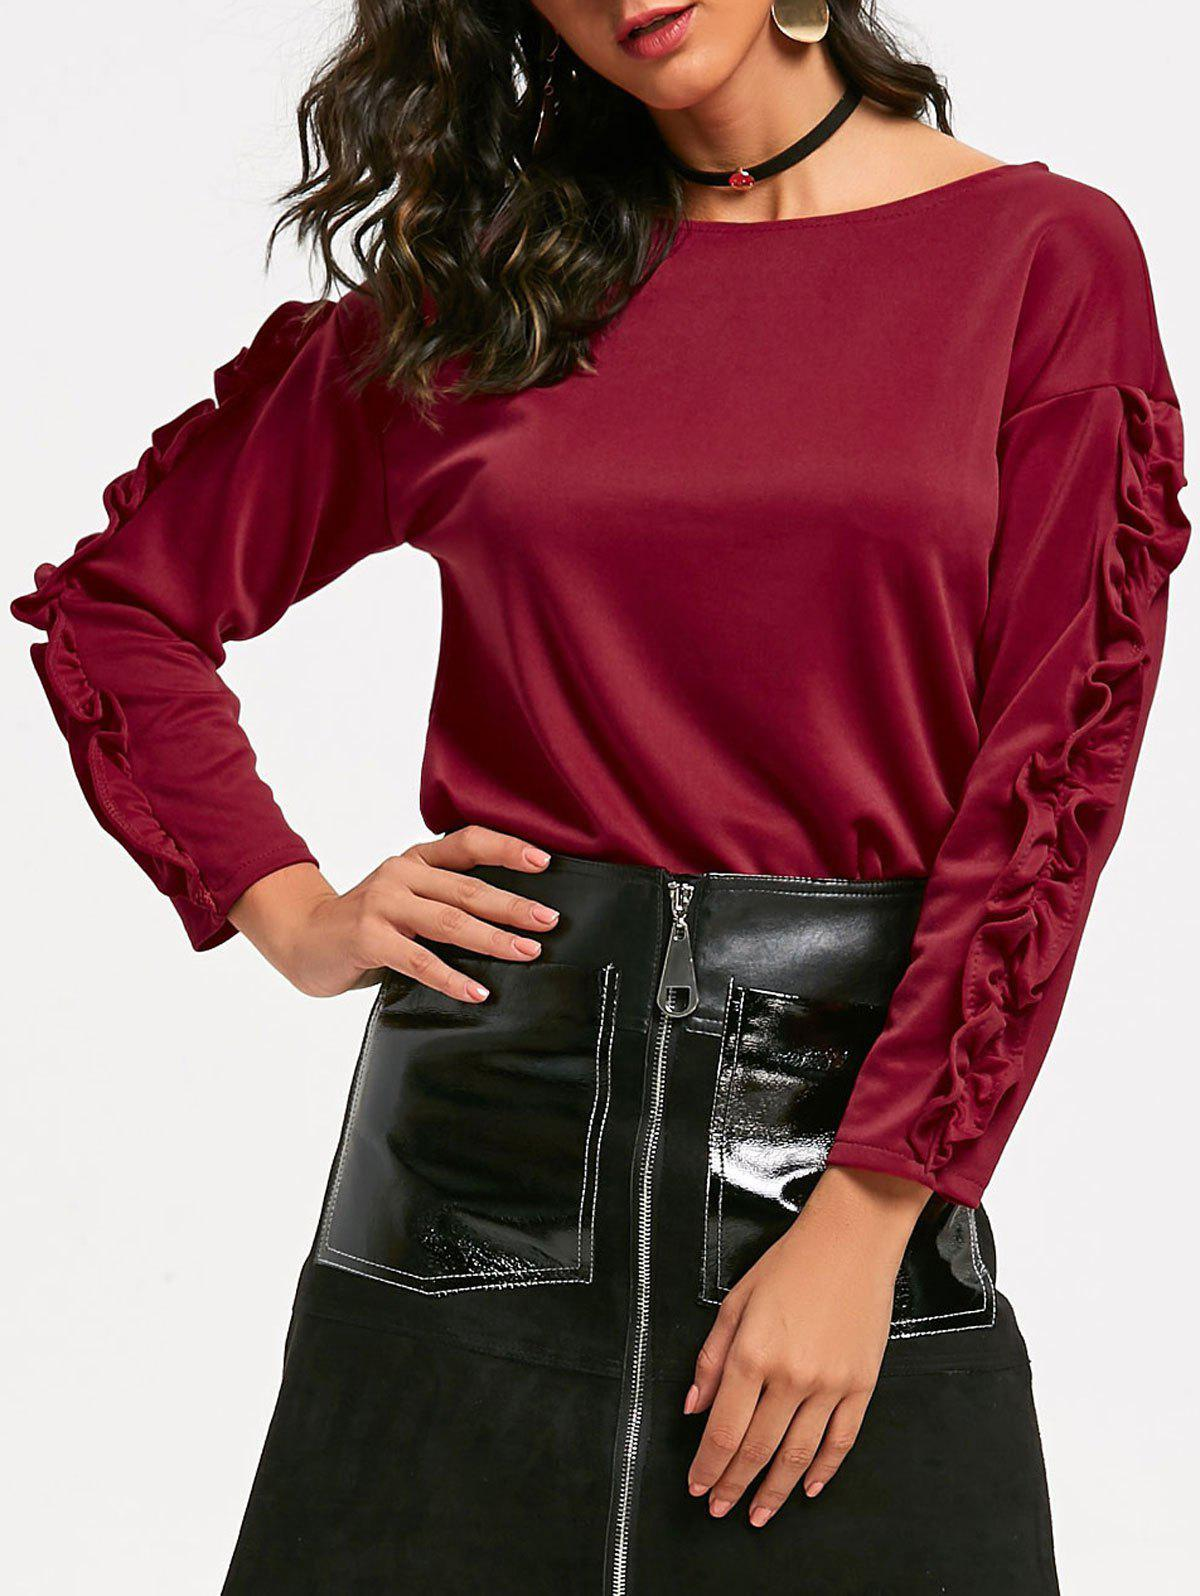 New Ruffle Sleeve Boat Neck Top